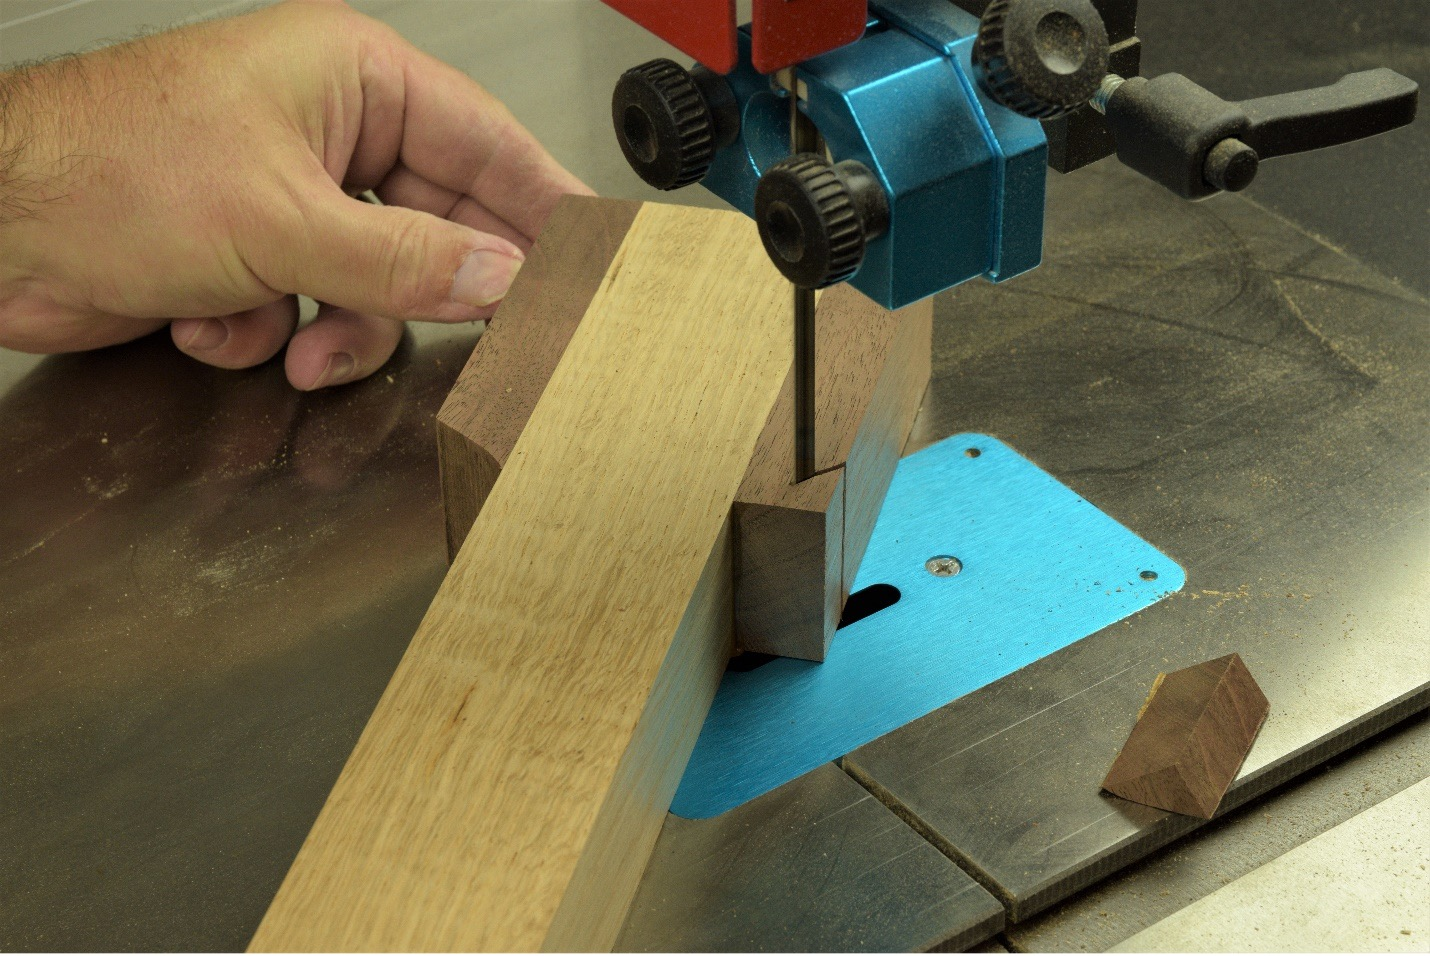 trimming smaller mallet blanks on wood working project